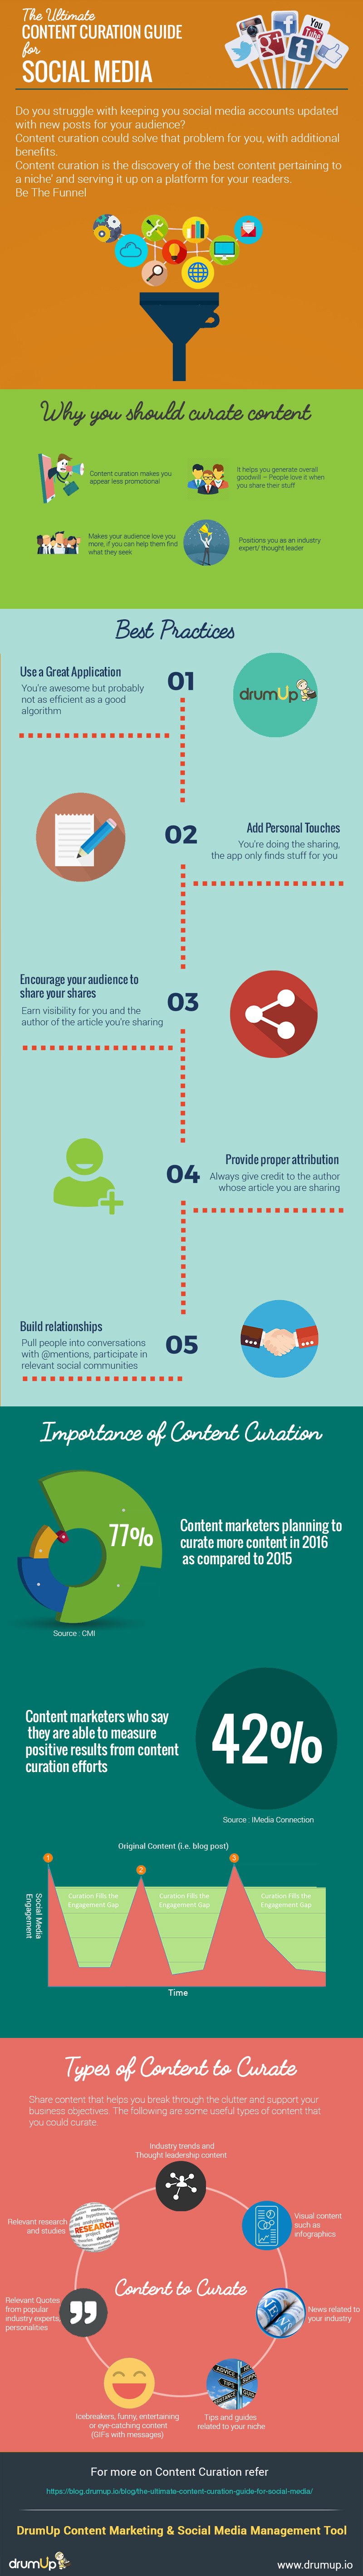 Content-curation-infographic-2